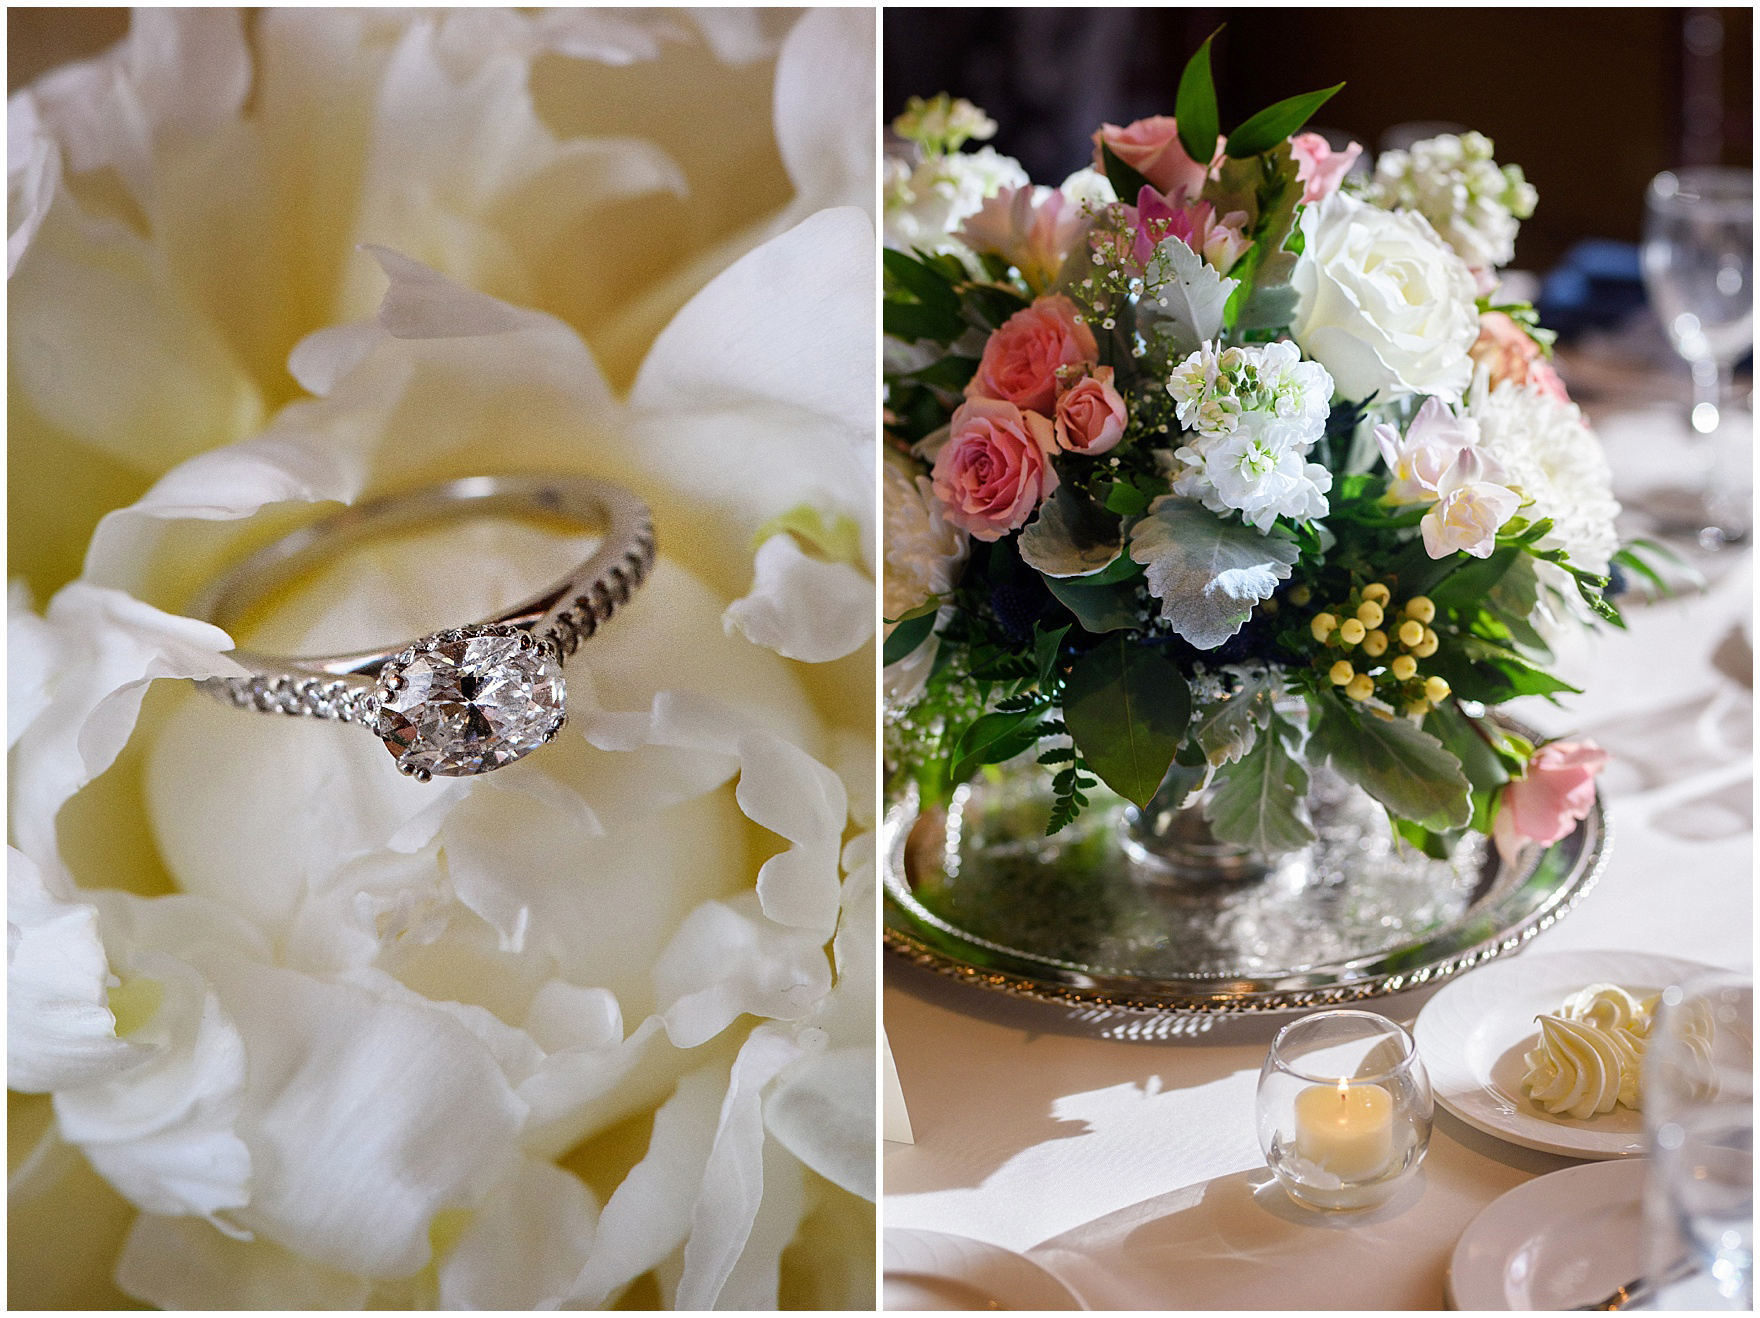 Details of a diamond engagement ring and centerpieces with pink and white roses for a Biltmore Country Club Barrington wedding.